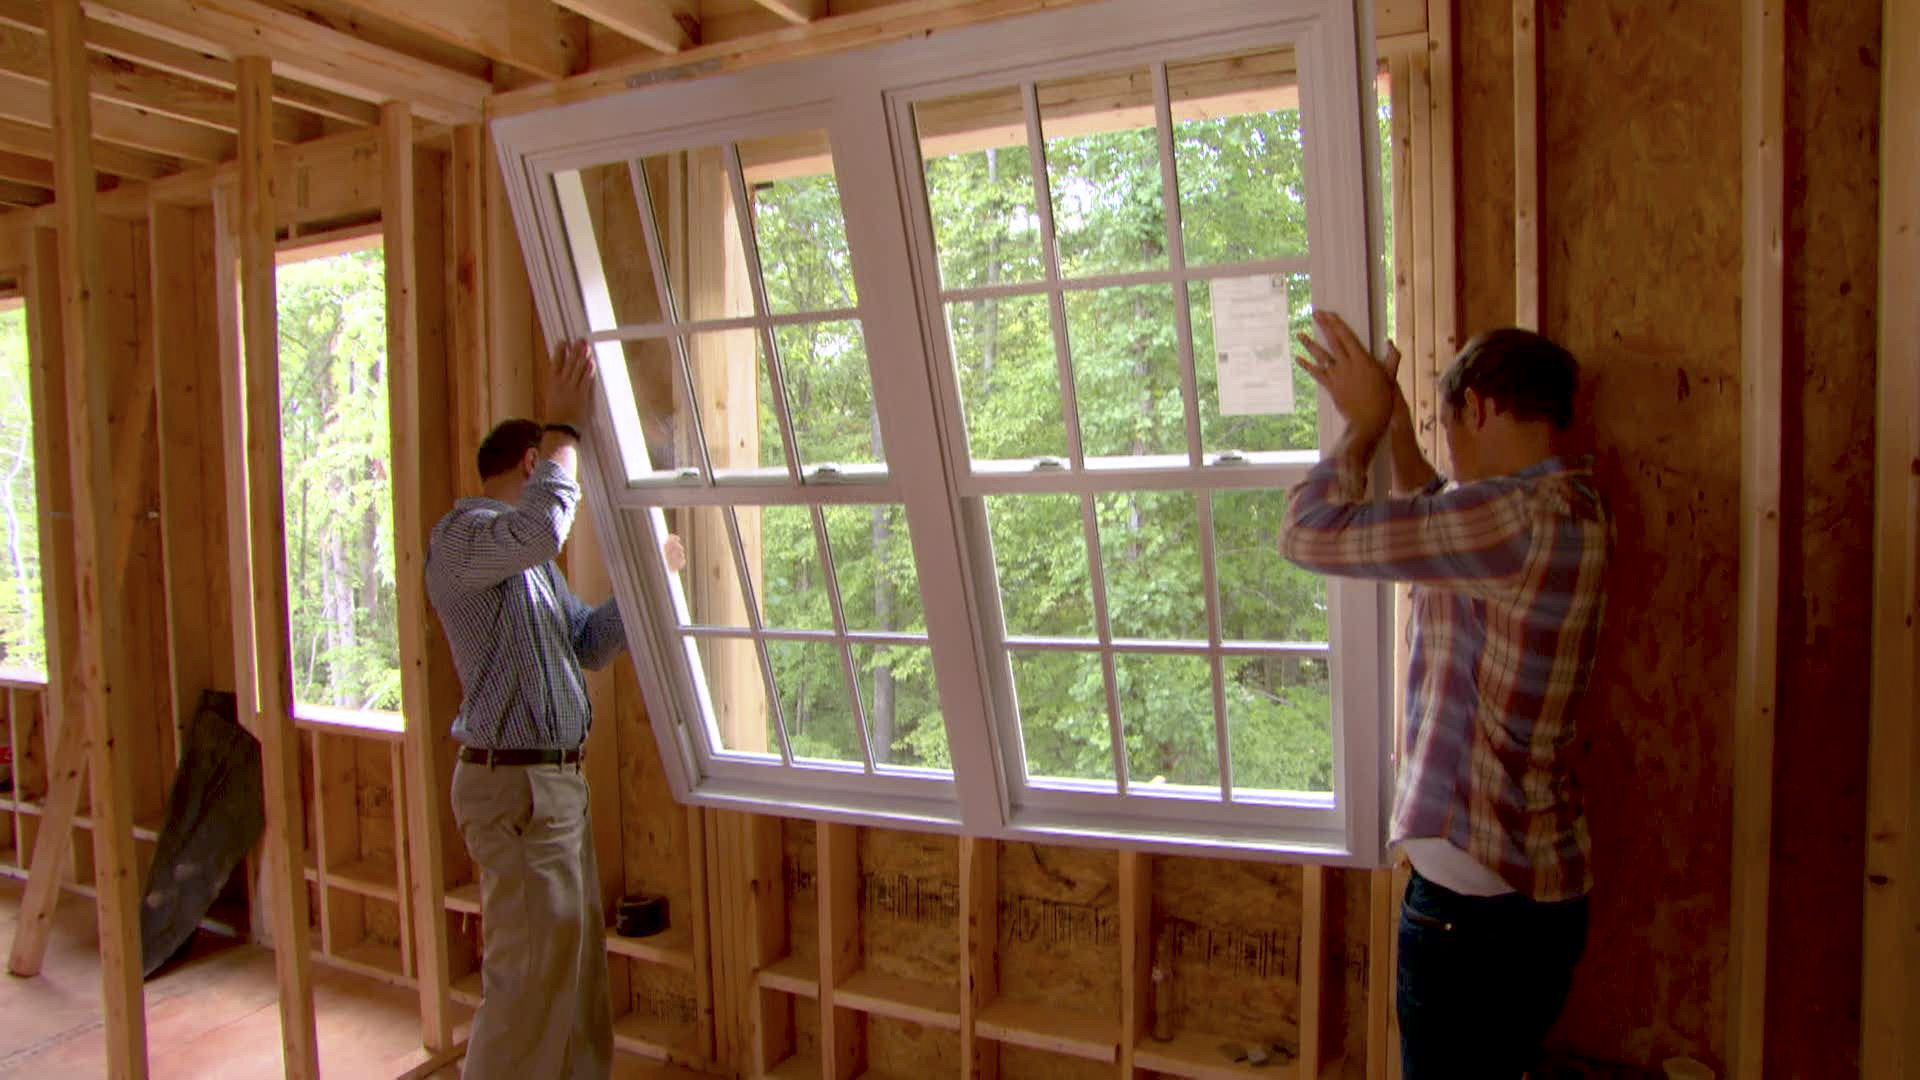 Chris Lambton helps install windows, plumbing and roofing in HGTV Smart Home 2016.